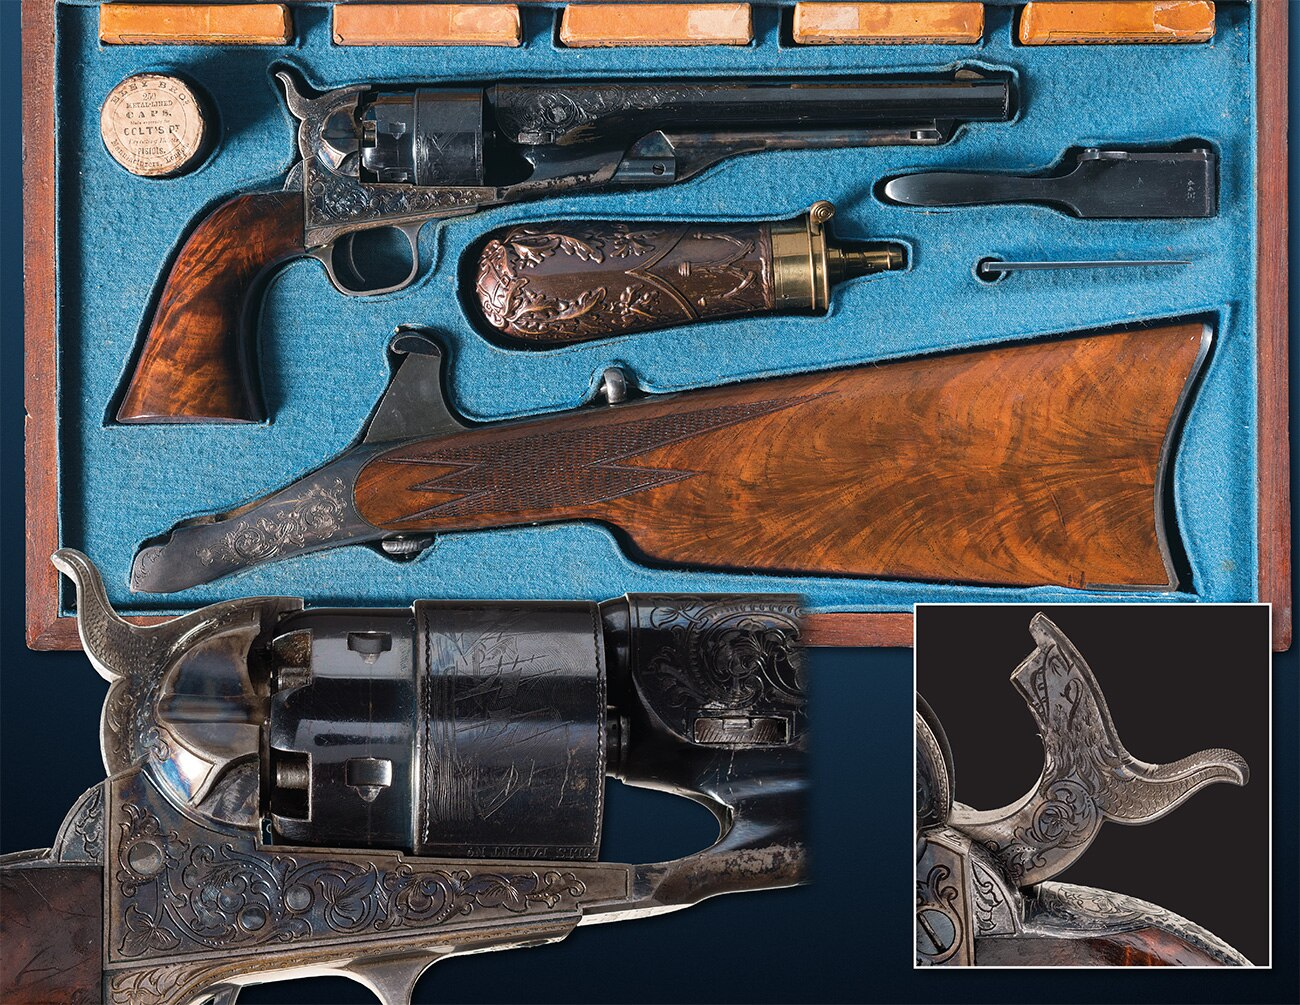 Next up is this exhibition engraved Colt Model 1860 .44 caliber Army Revolver with its matching factory shoulder stock. While the 8-inch barrel is sweet, the stock is what sets the piece off and it has been documented as passing through some of the most estemmed firearms collections in history. Estimated Price: $160,000 - $280,000